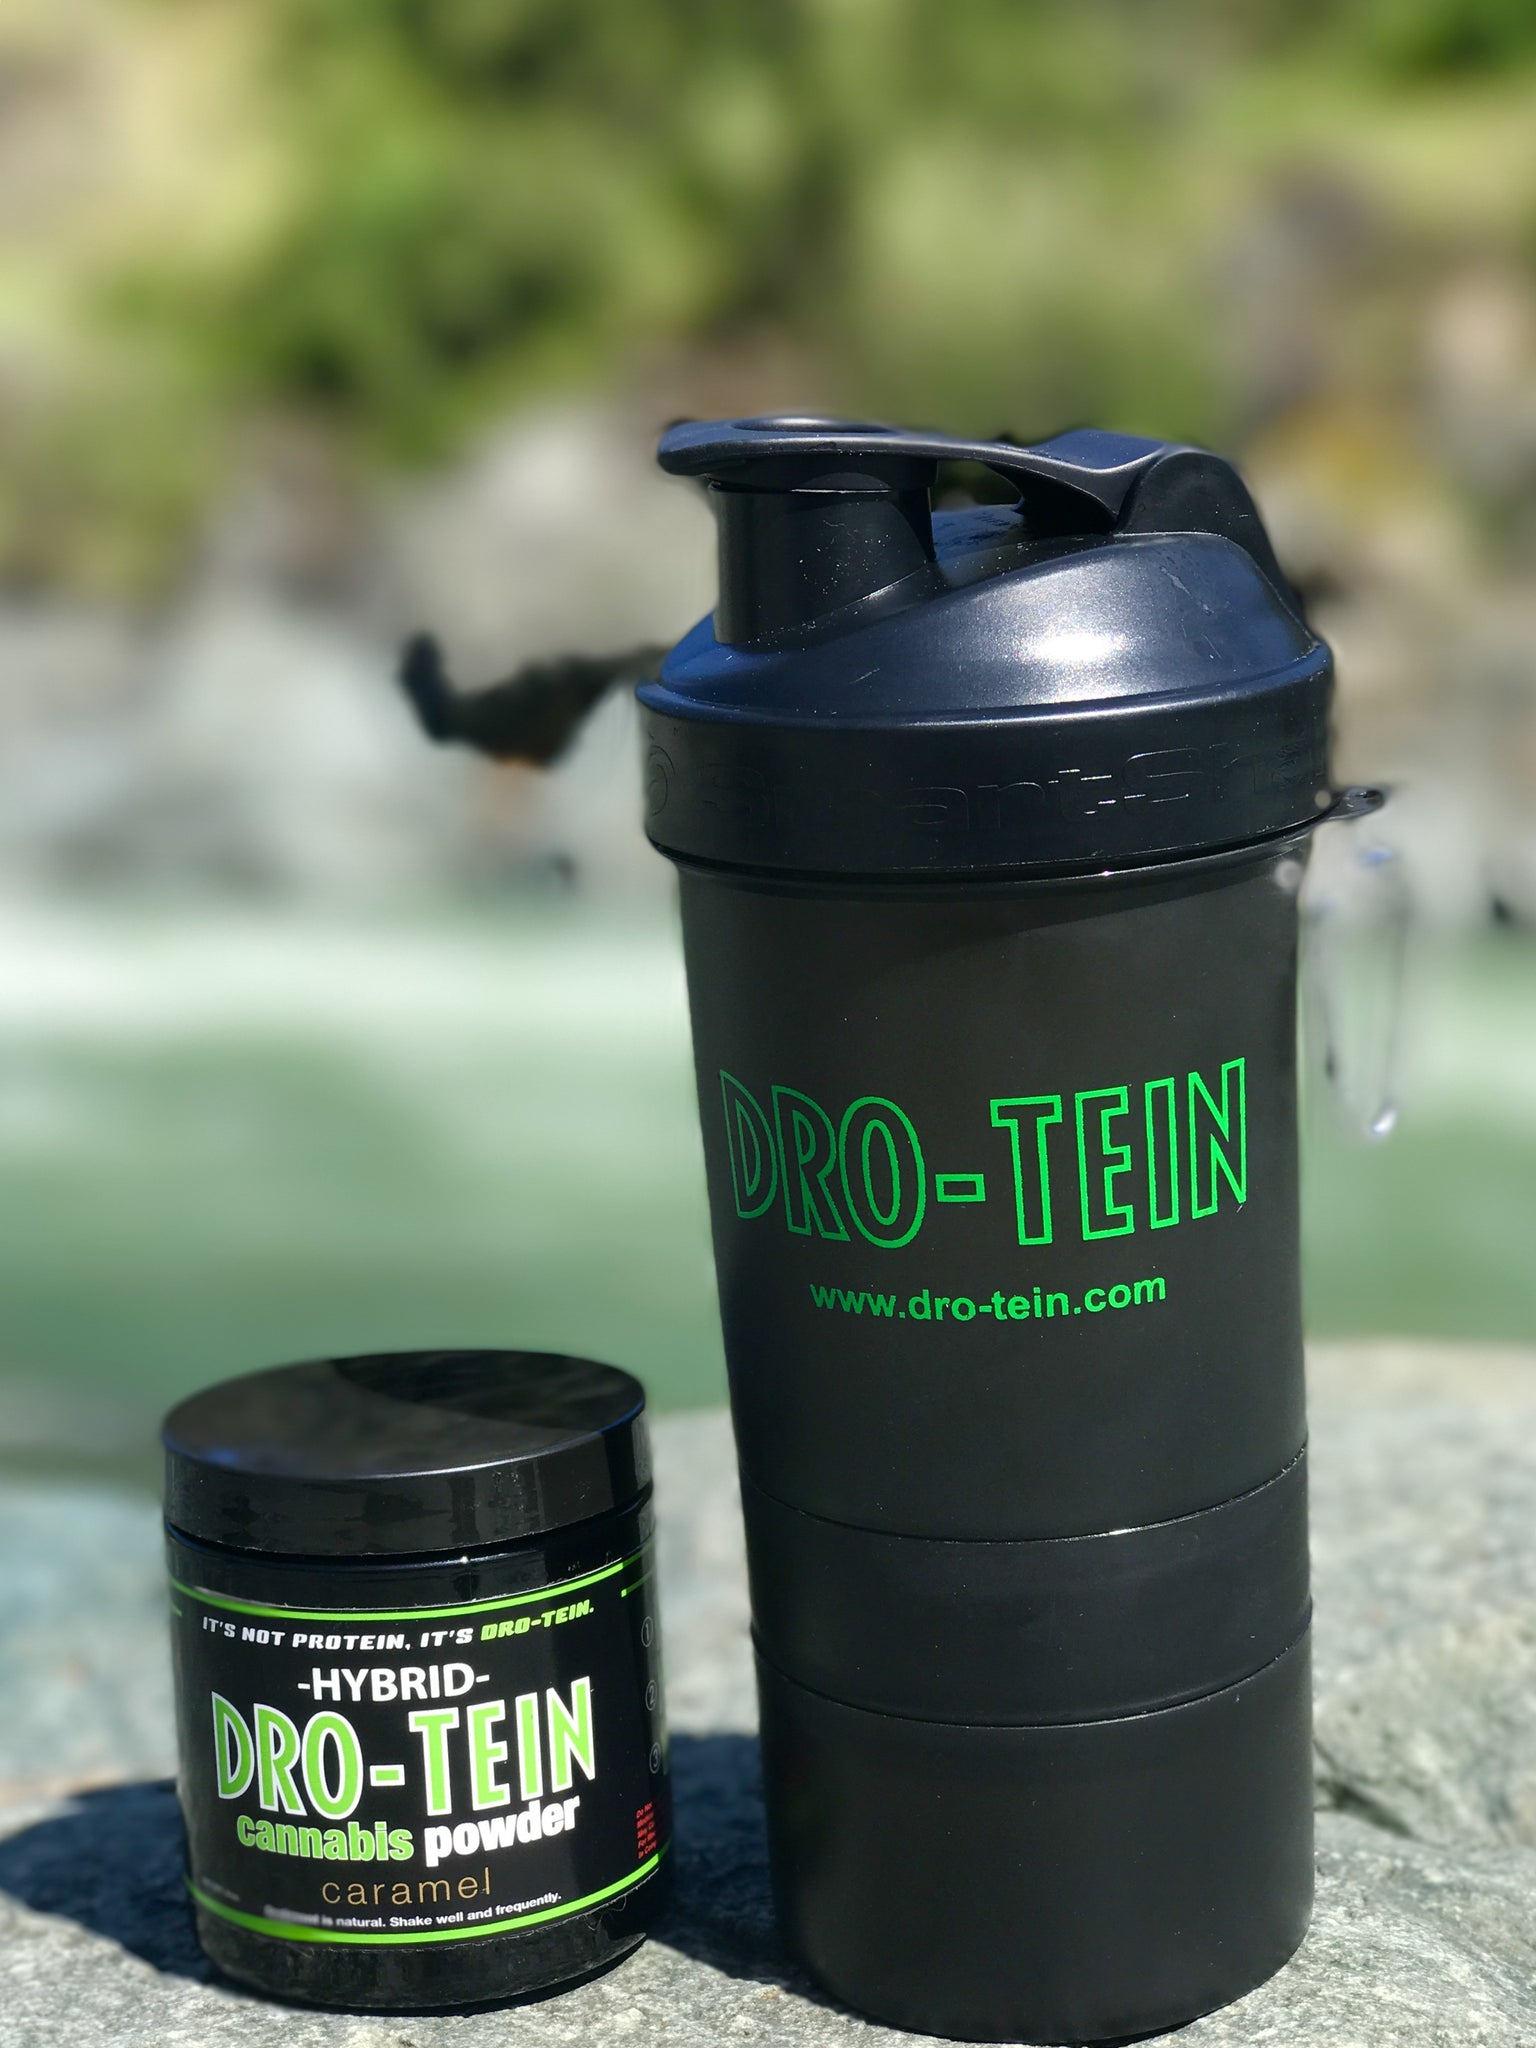 Dro-tein Shaker Bottle